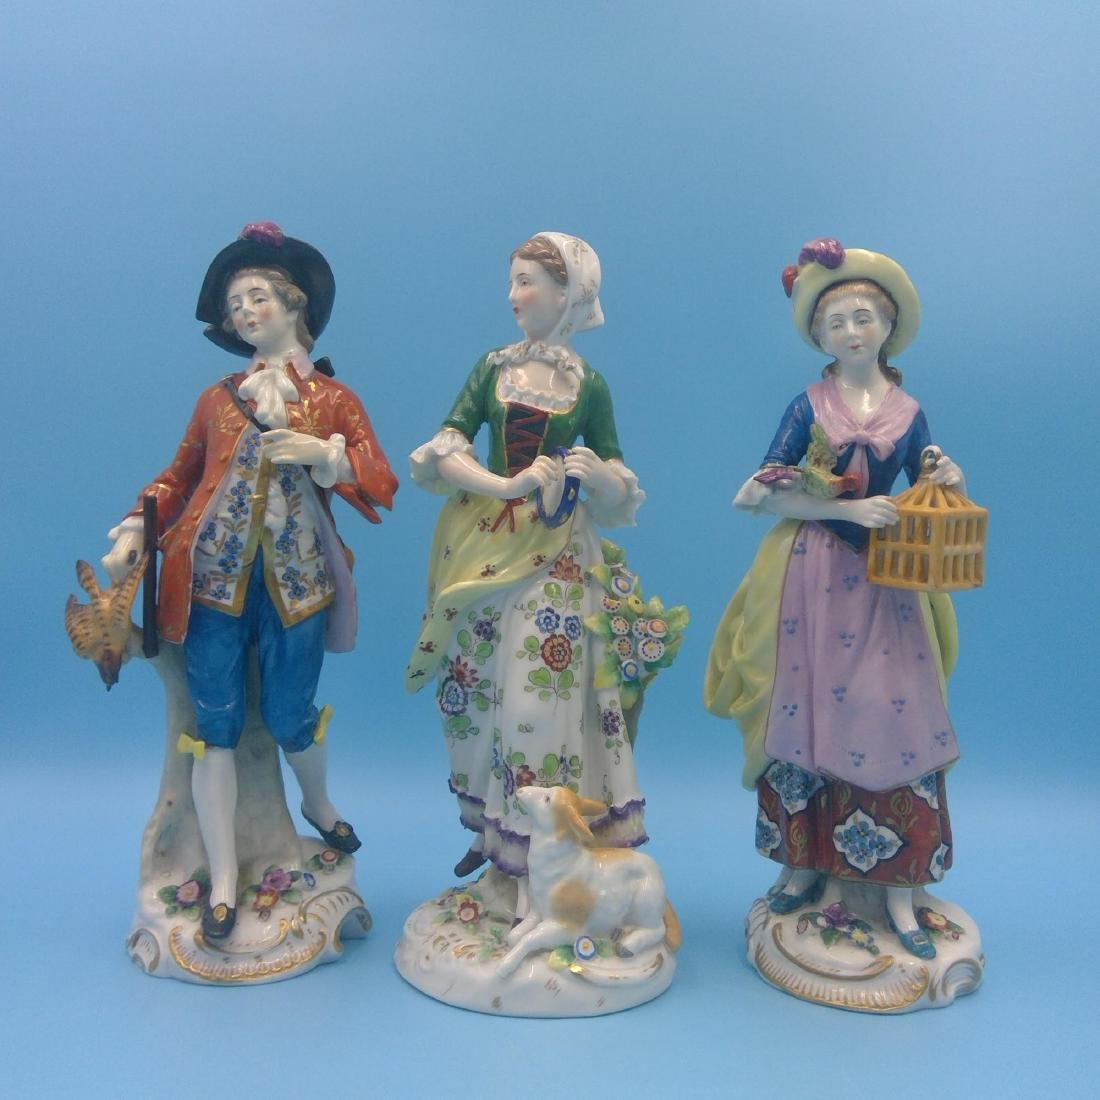 GROUP OF 3 CHELSEA 18thC ENGLISH PORCELAIN FIGURES